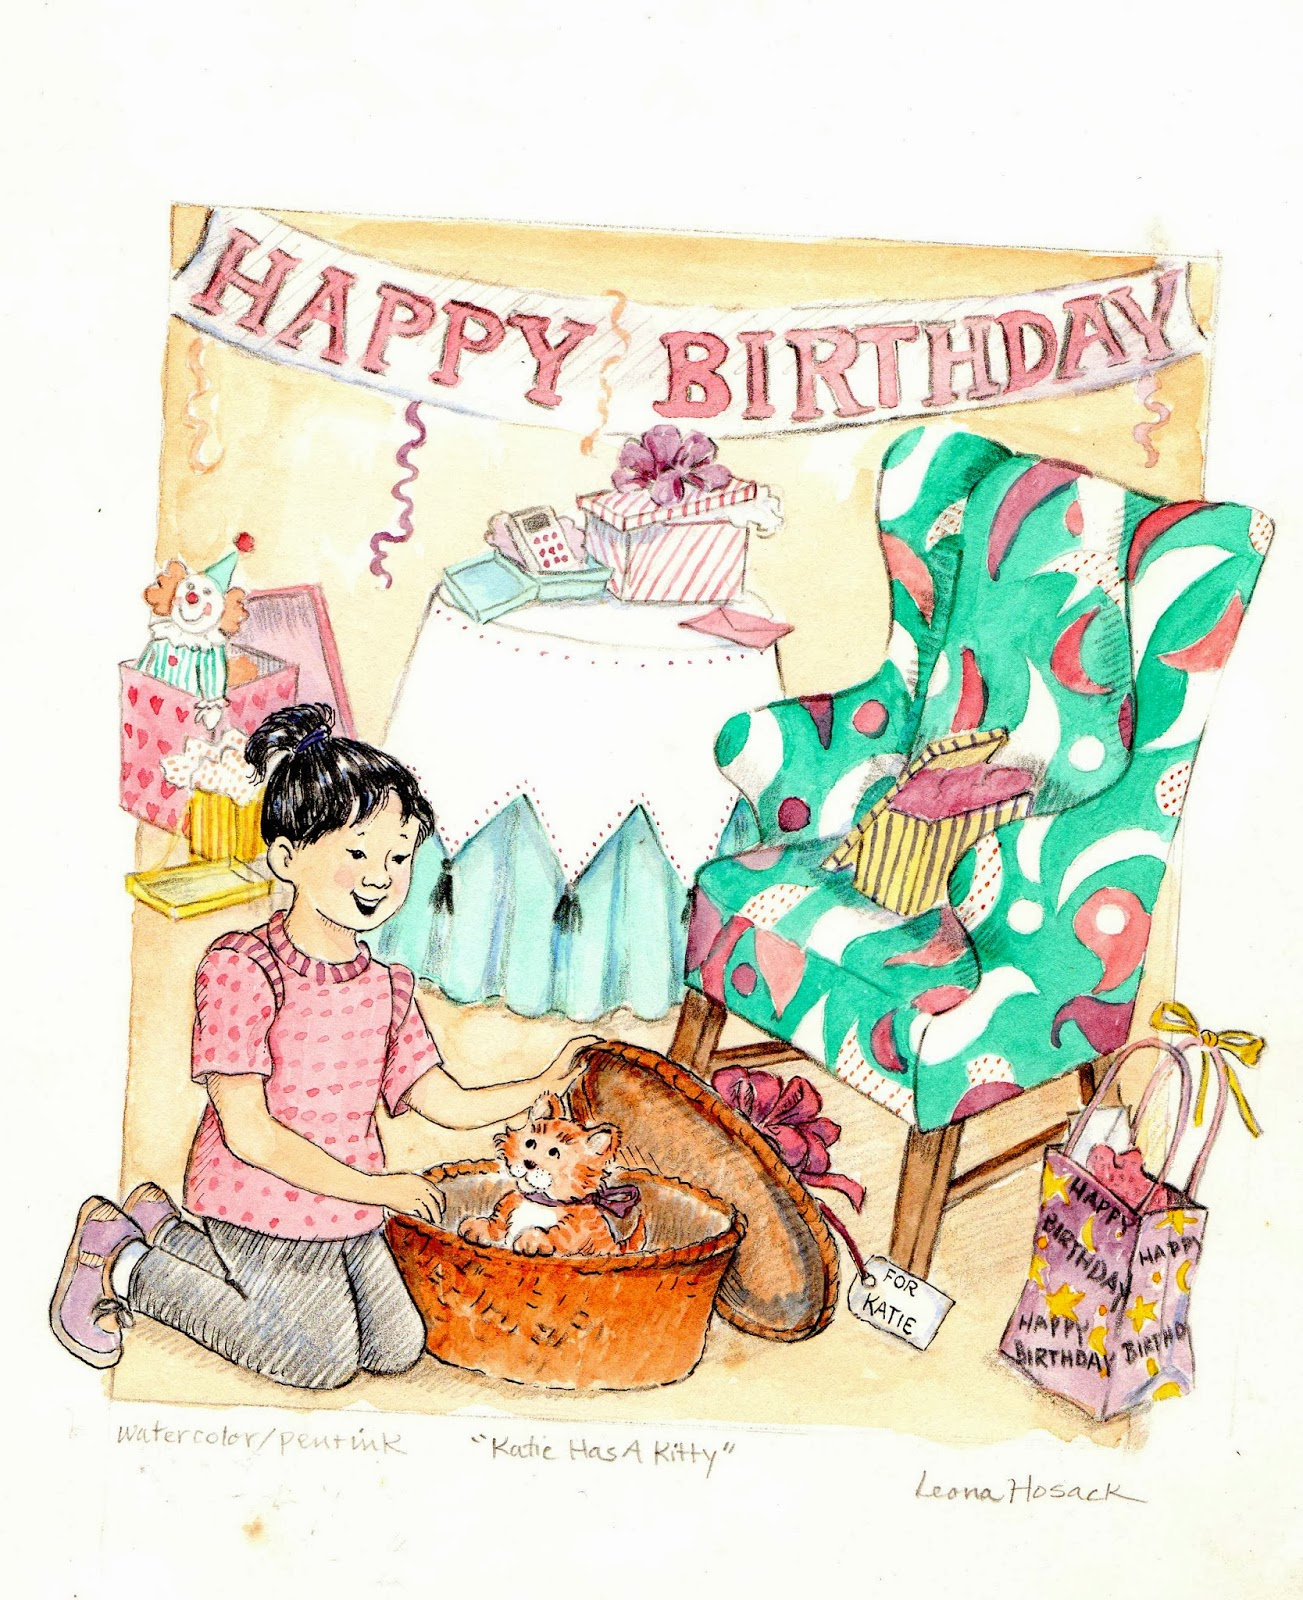 gifts, birthday party, kittens, multicultural,illustration, children's art